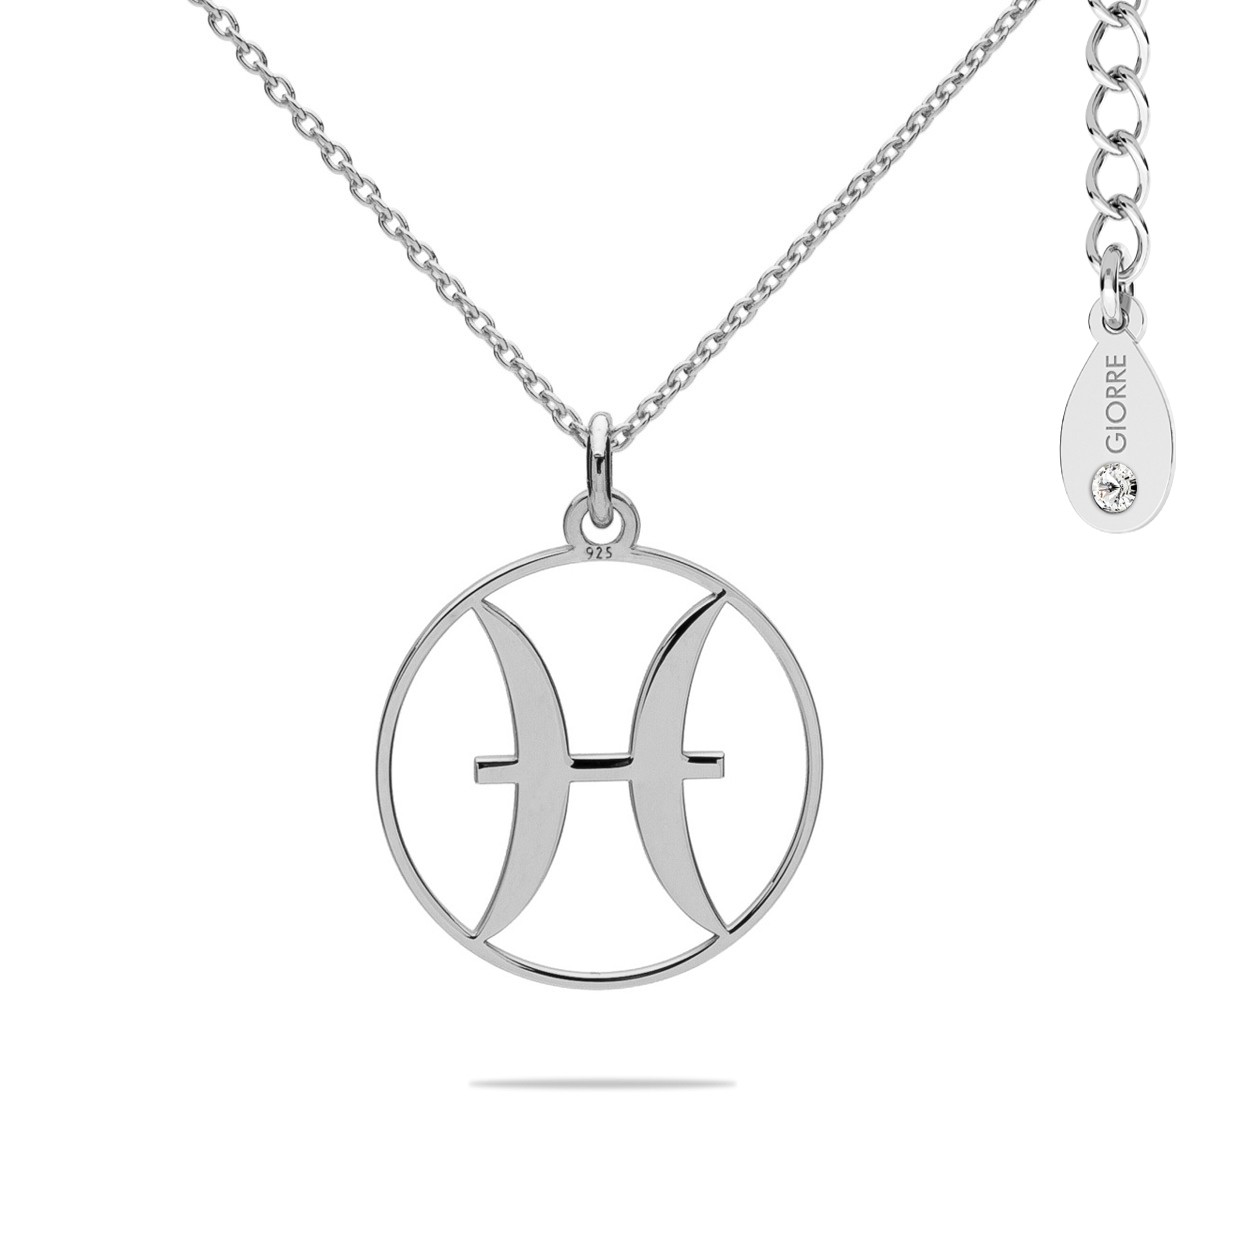 PISCES zodiac sign necklace with Swarovski Crystals sterling silver 925